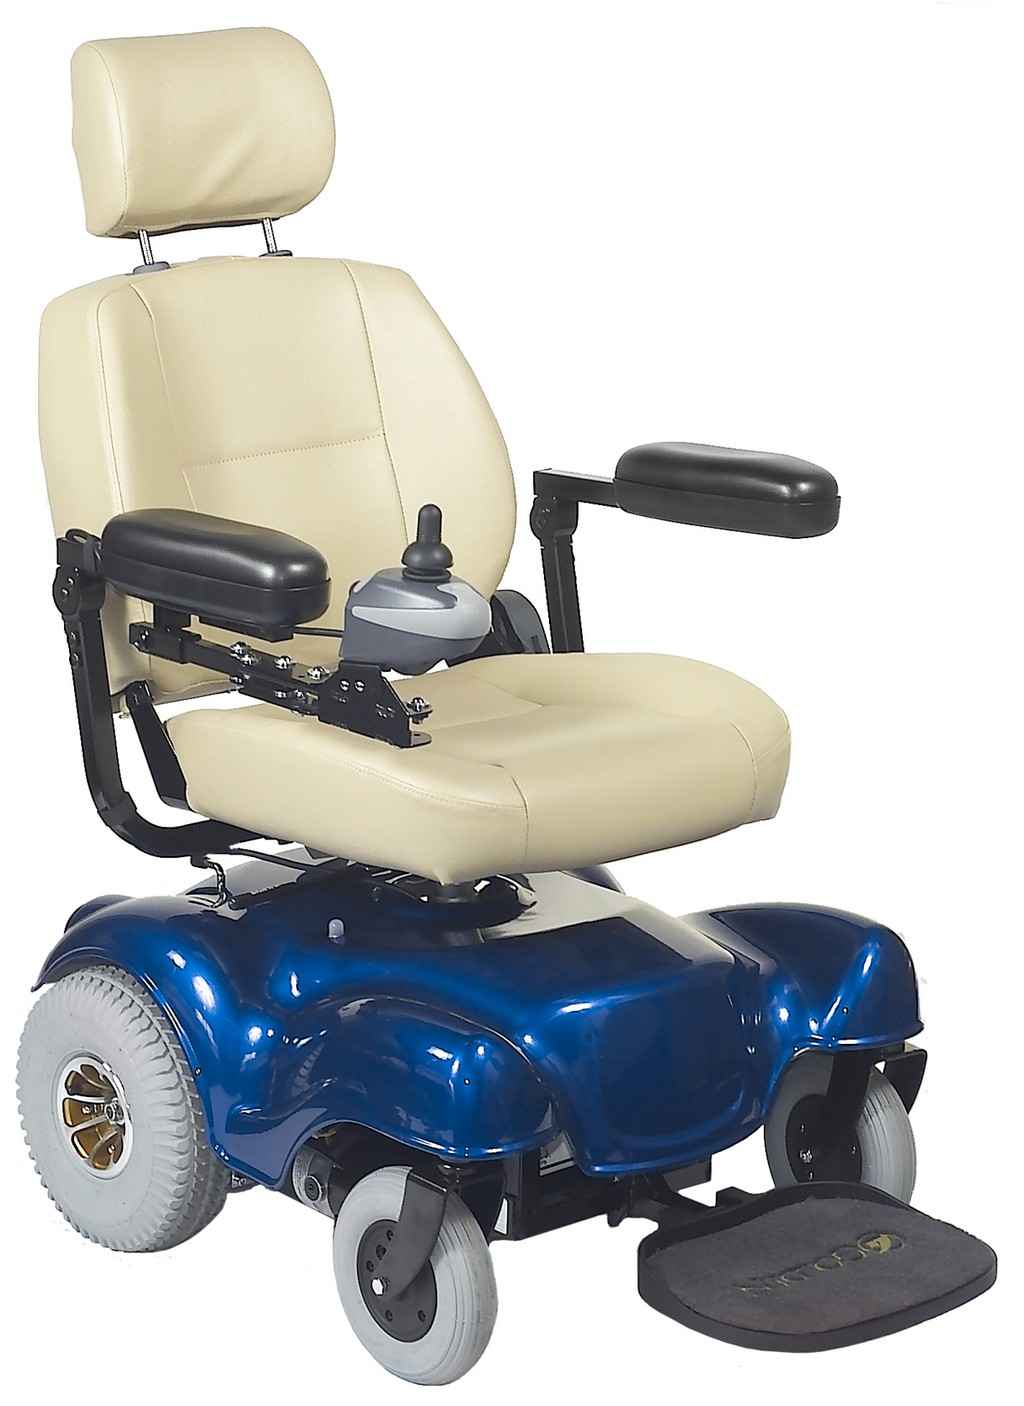 merits electric wheelchair, power wheel chair covers, dalton power wheel chairs, power wheelchairs for donation